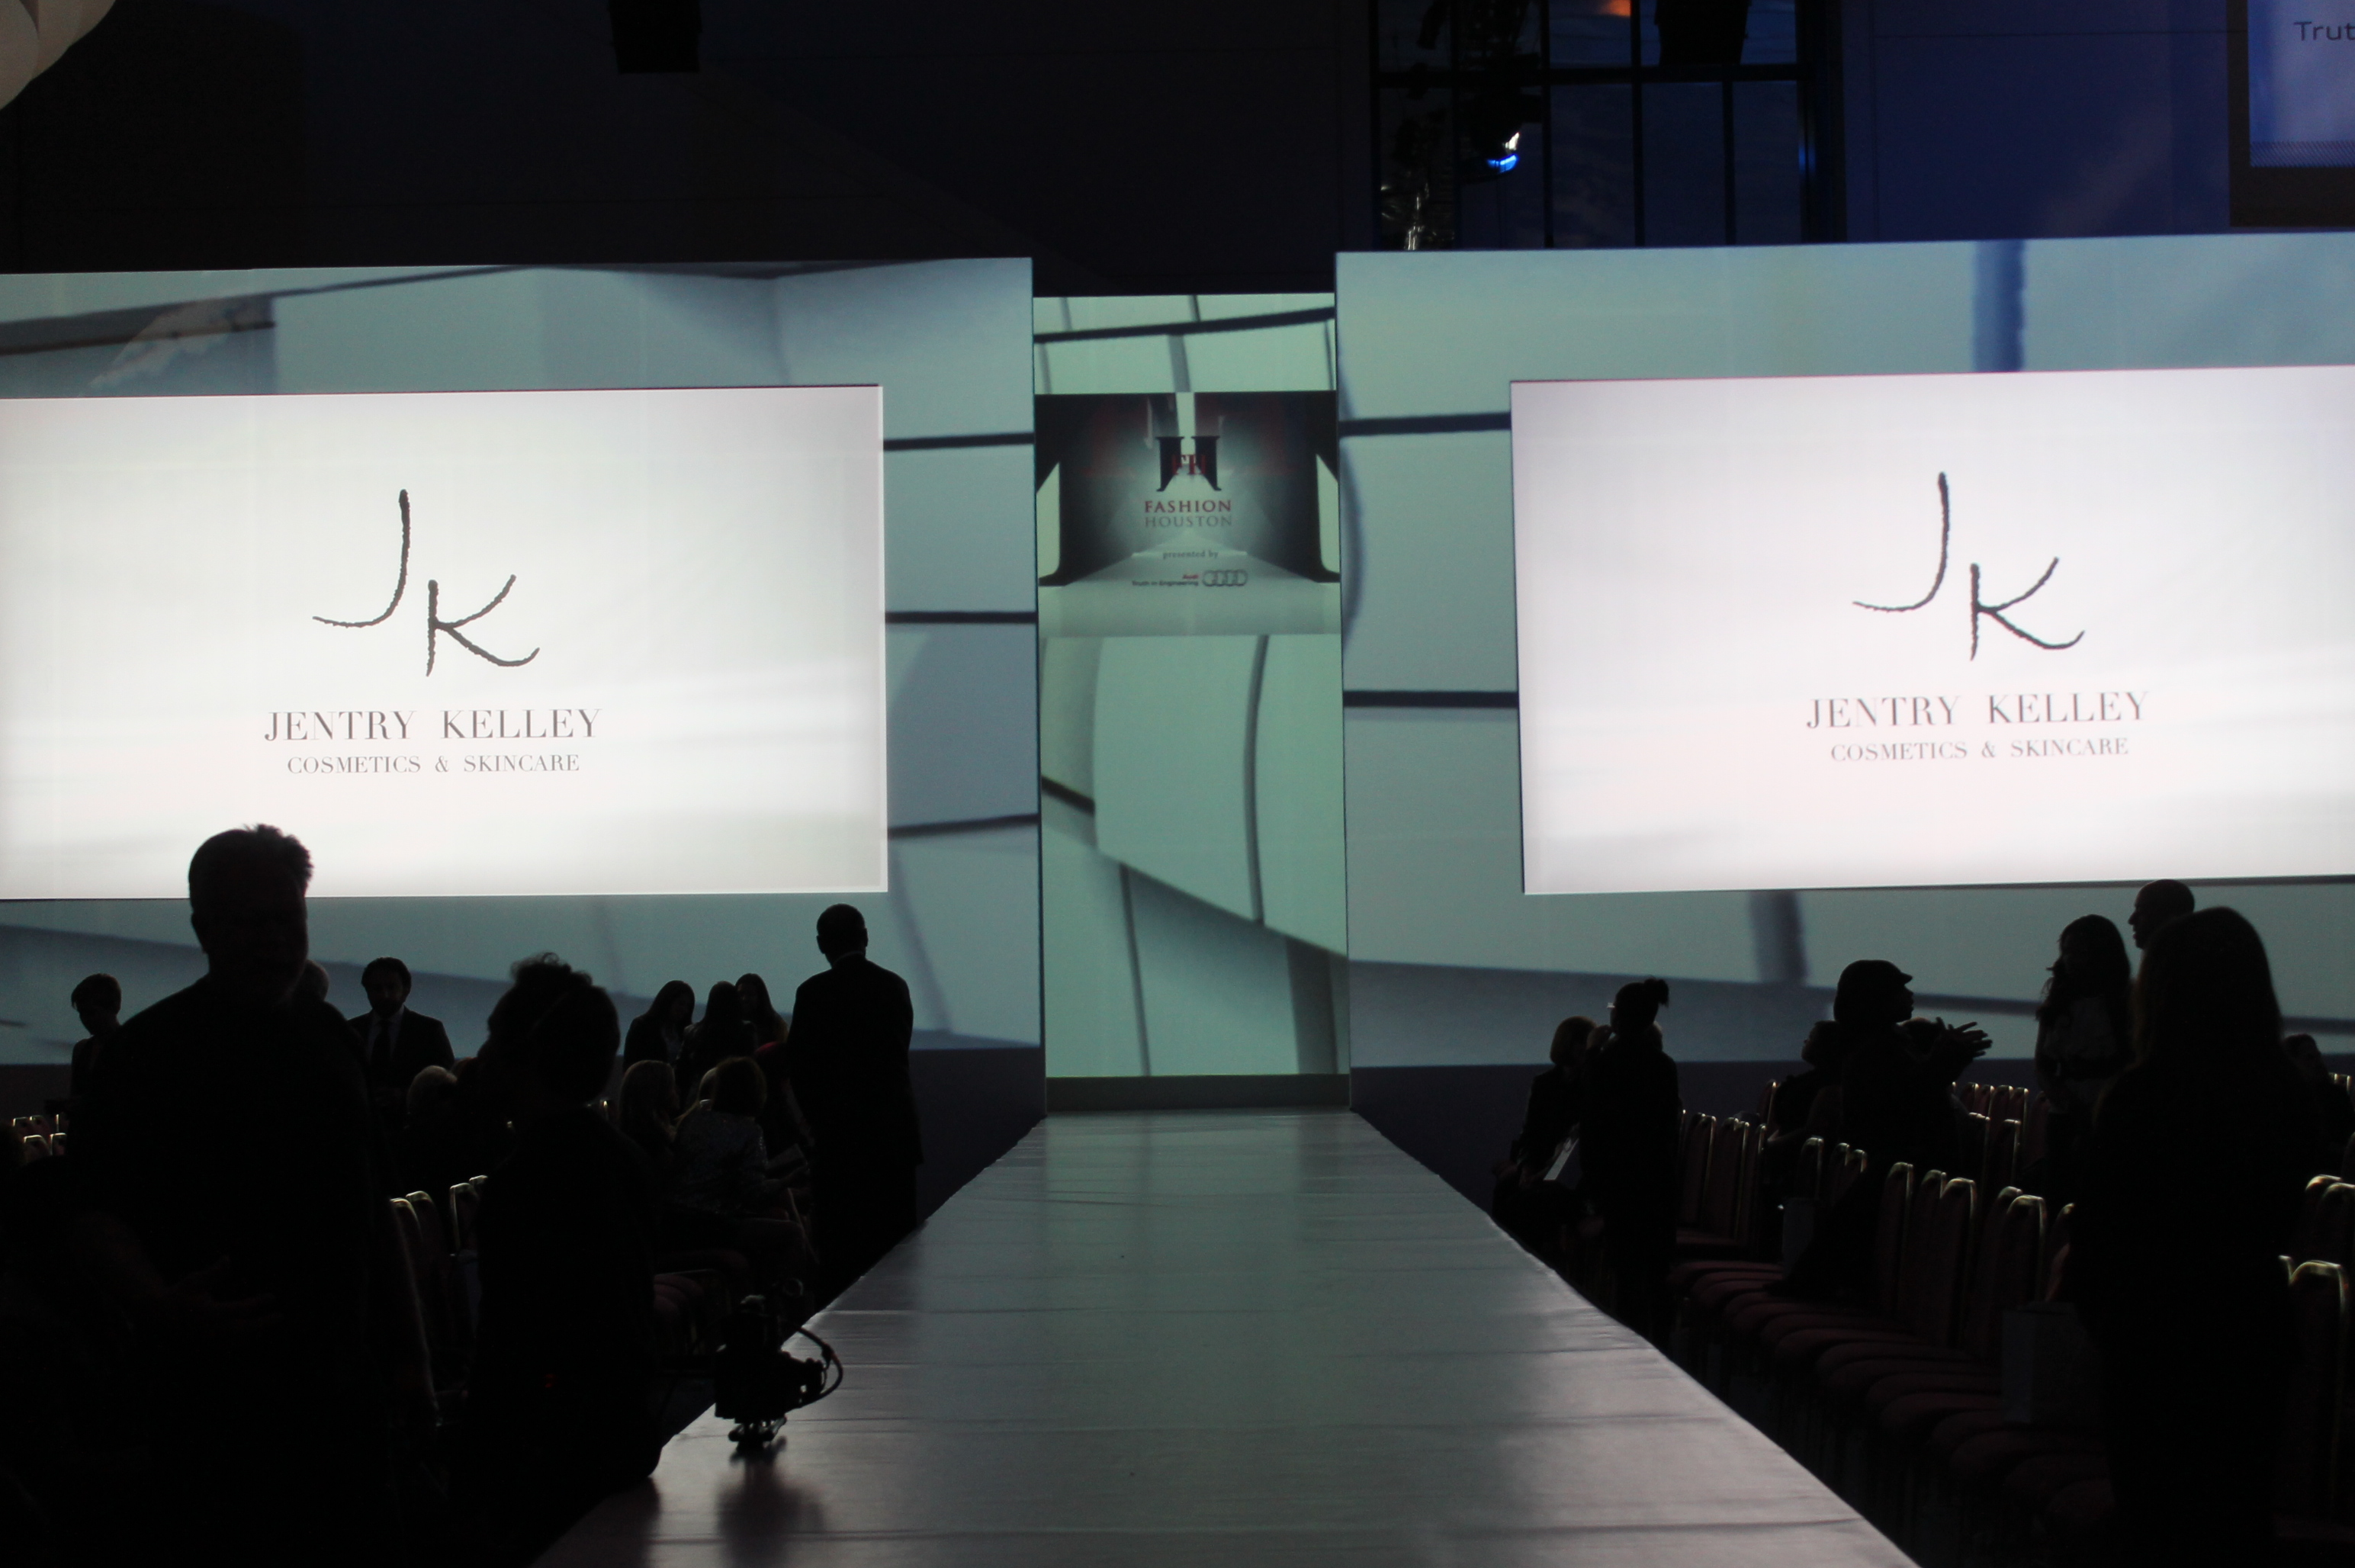 FASHION HOUSTON 2012-13 SPONSOR